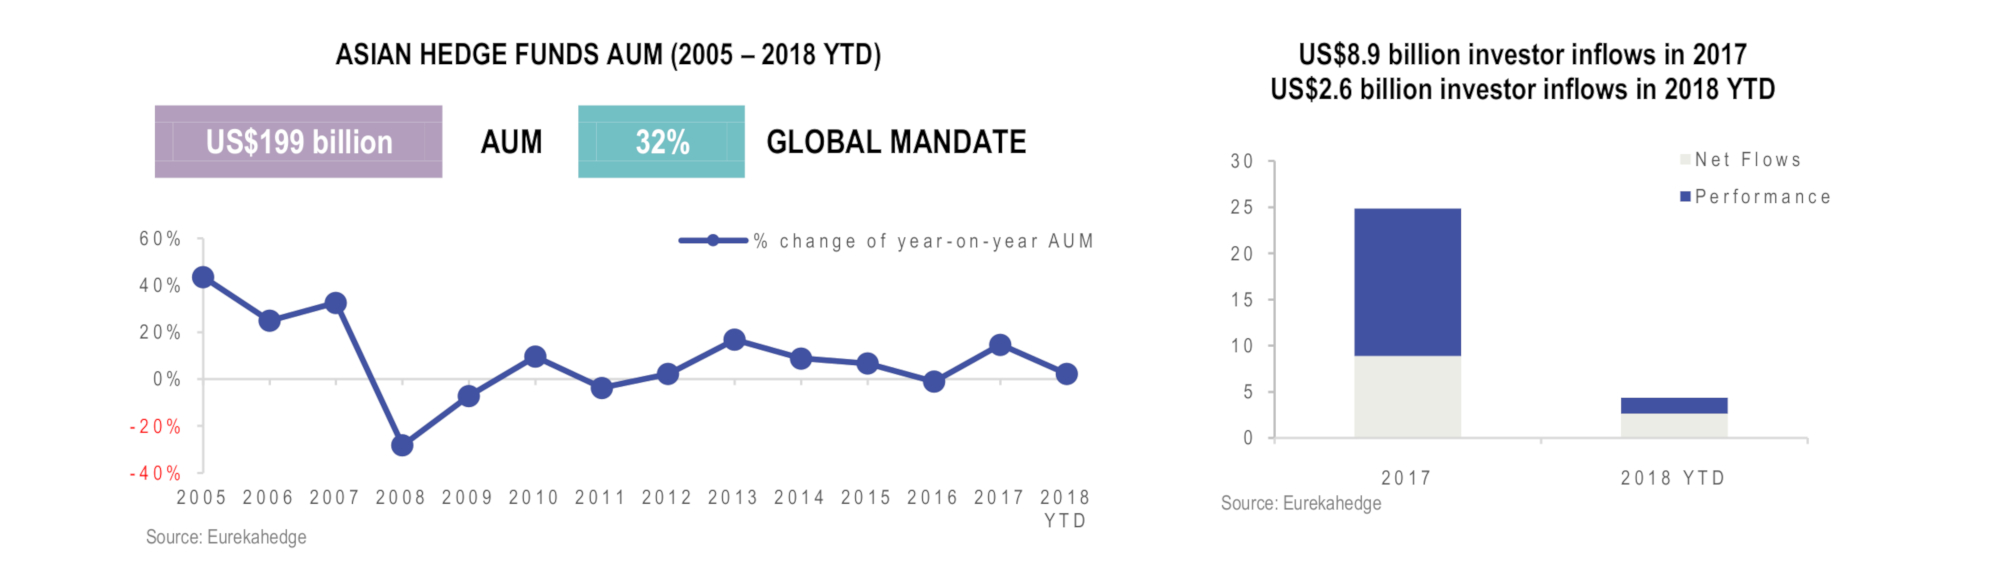 Asian Hedge Funds Infographic April 2018 - AUM